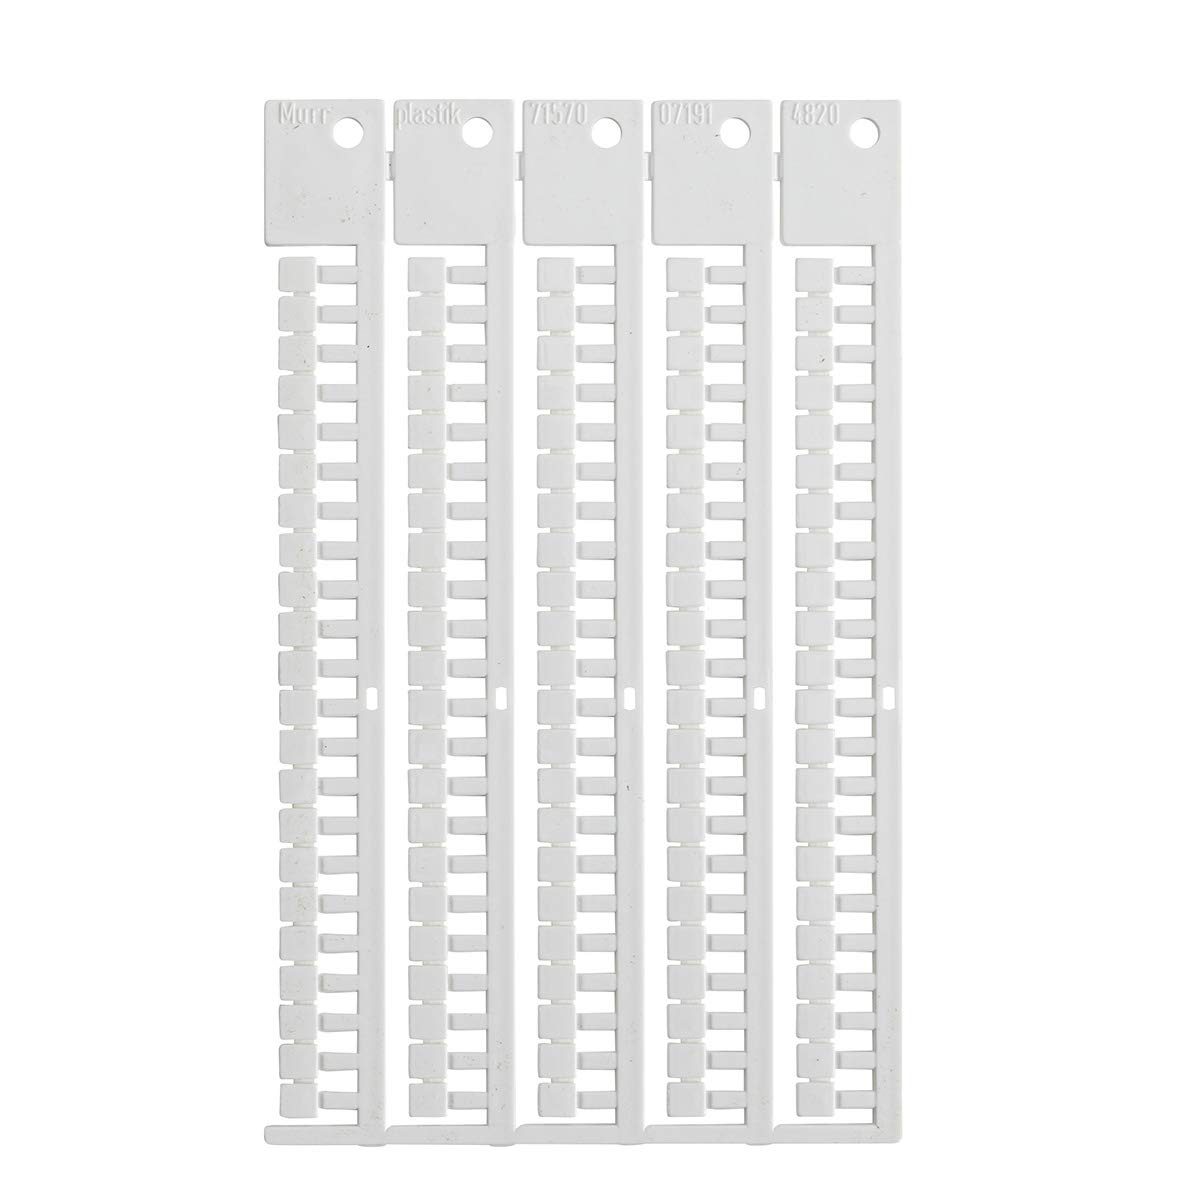 Selling and selling Terminal Block Tag Polycarbonate 5.00 5% OFF Mm H Tags W X 110